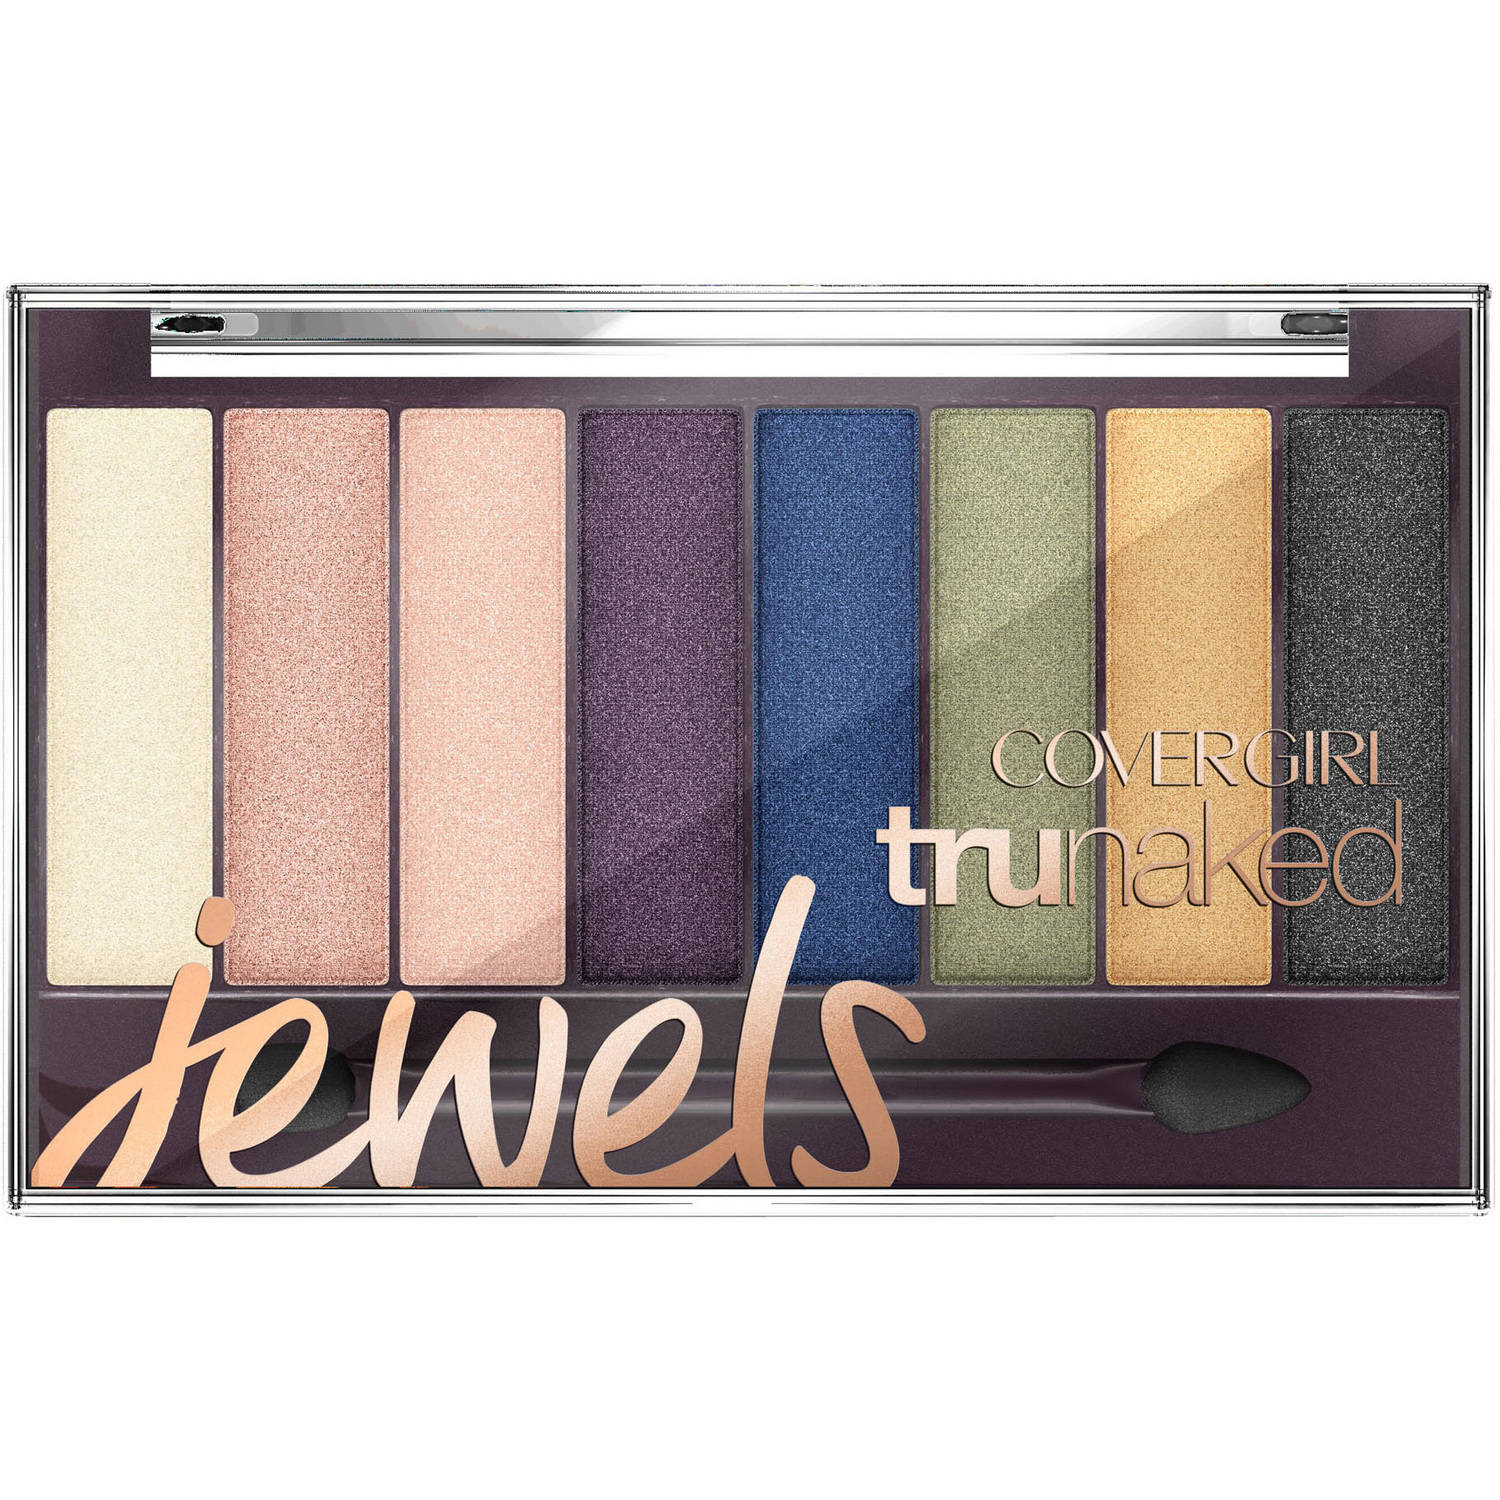 COVERGIRL truNaked Jewels Eyeshadow Palette, 0.23 oz